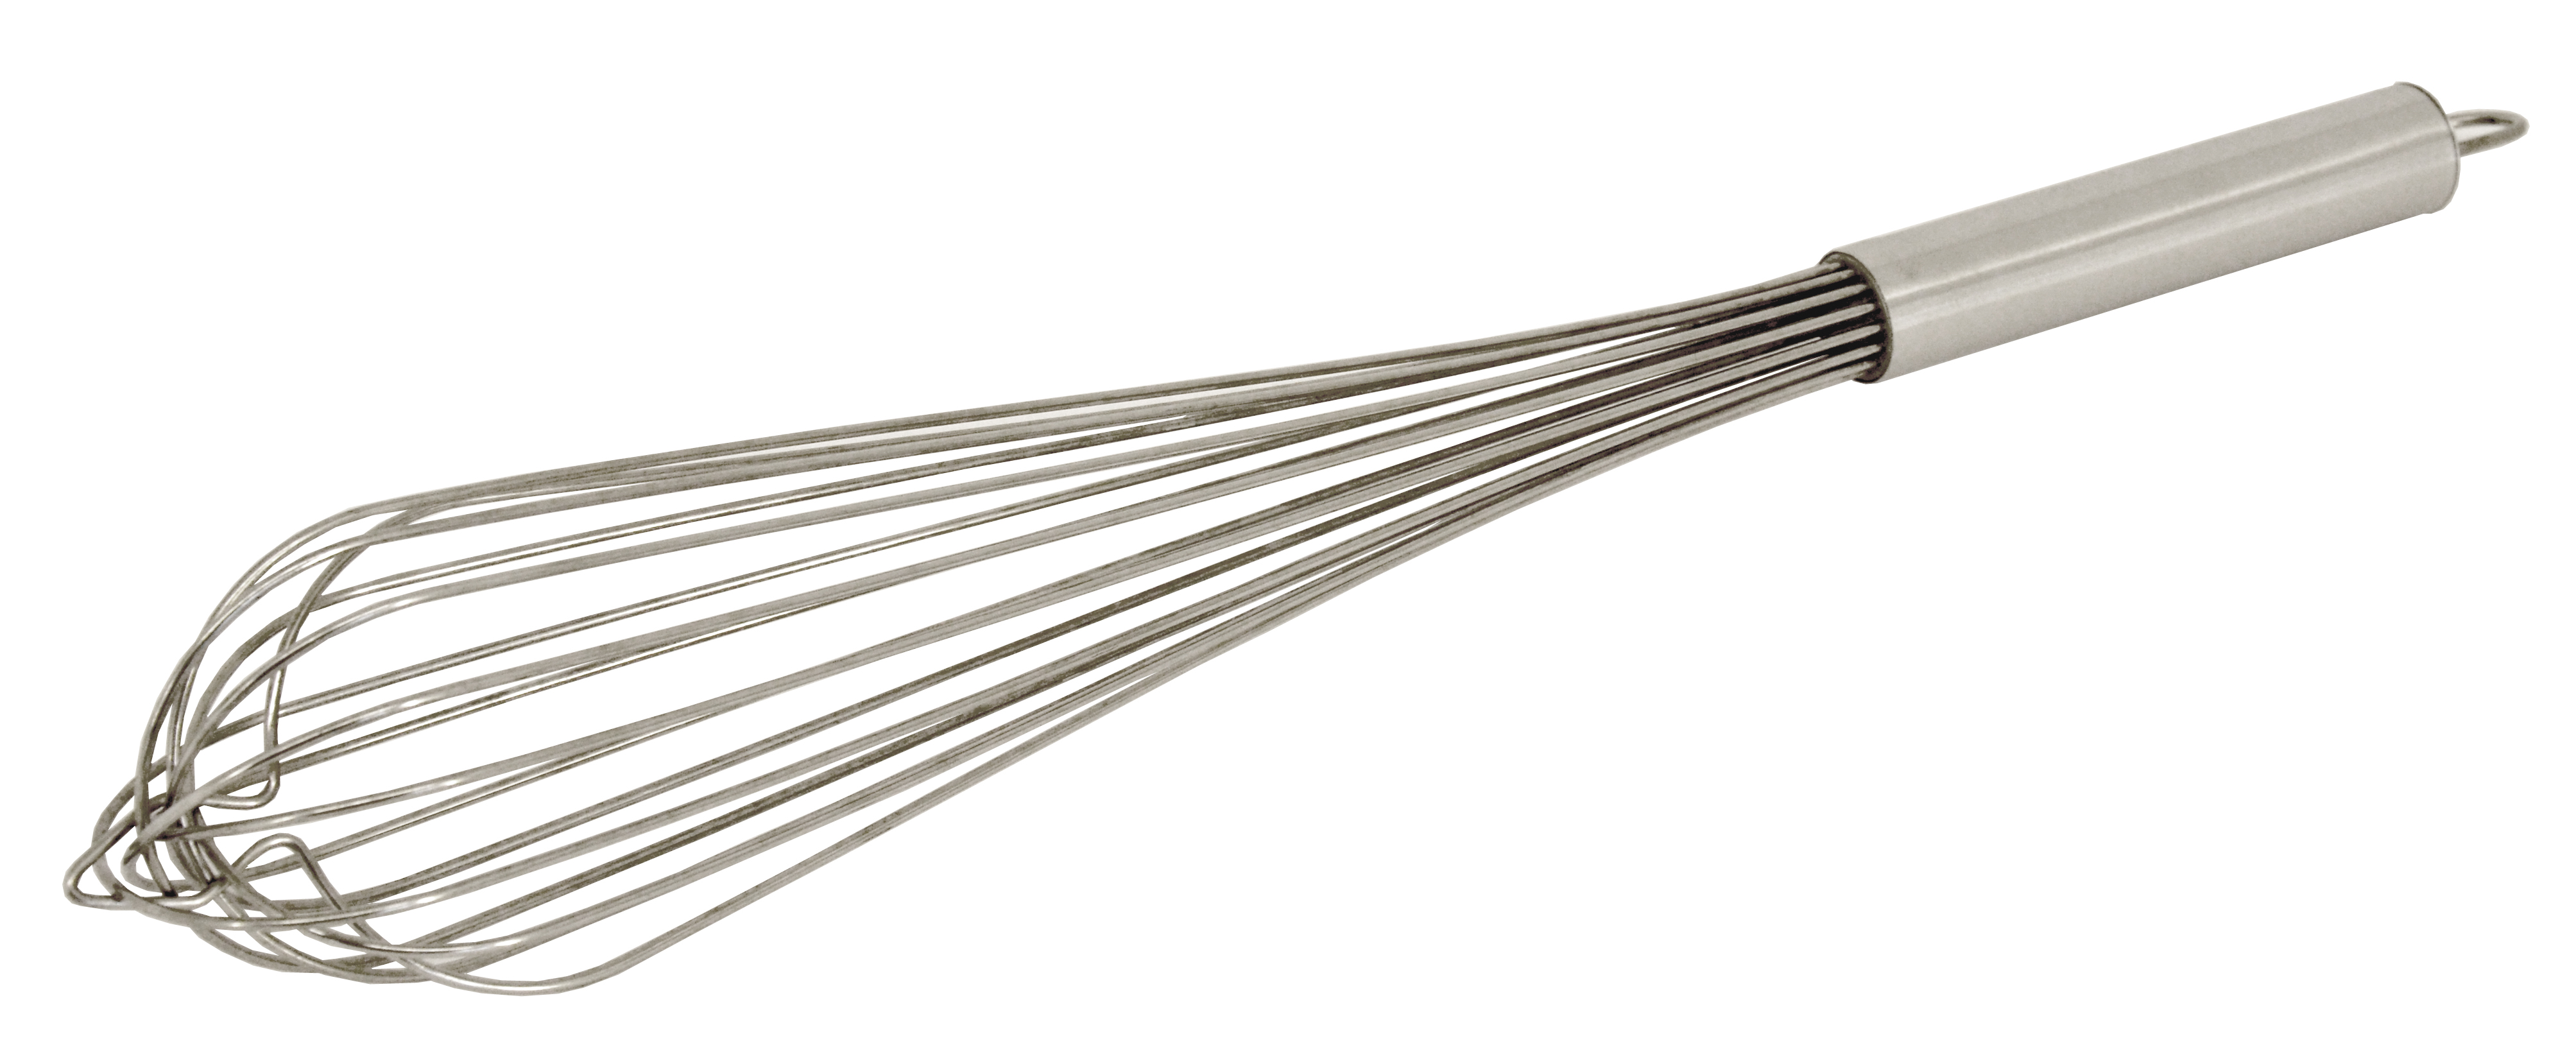 10 Inch Stainless Steel French Whip Omcan Electrical Wiring